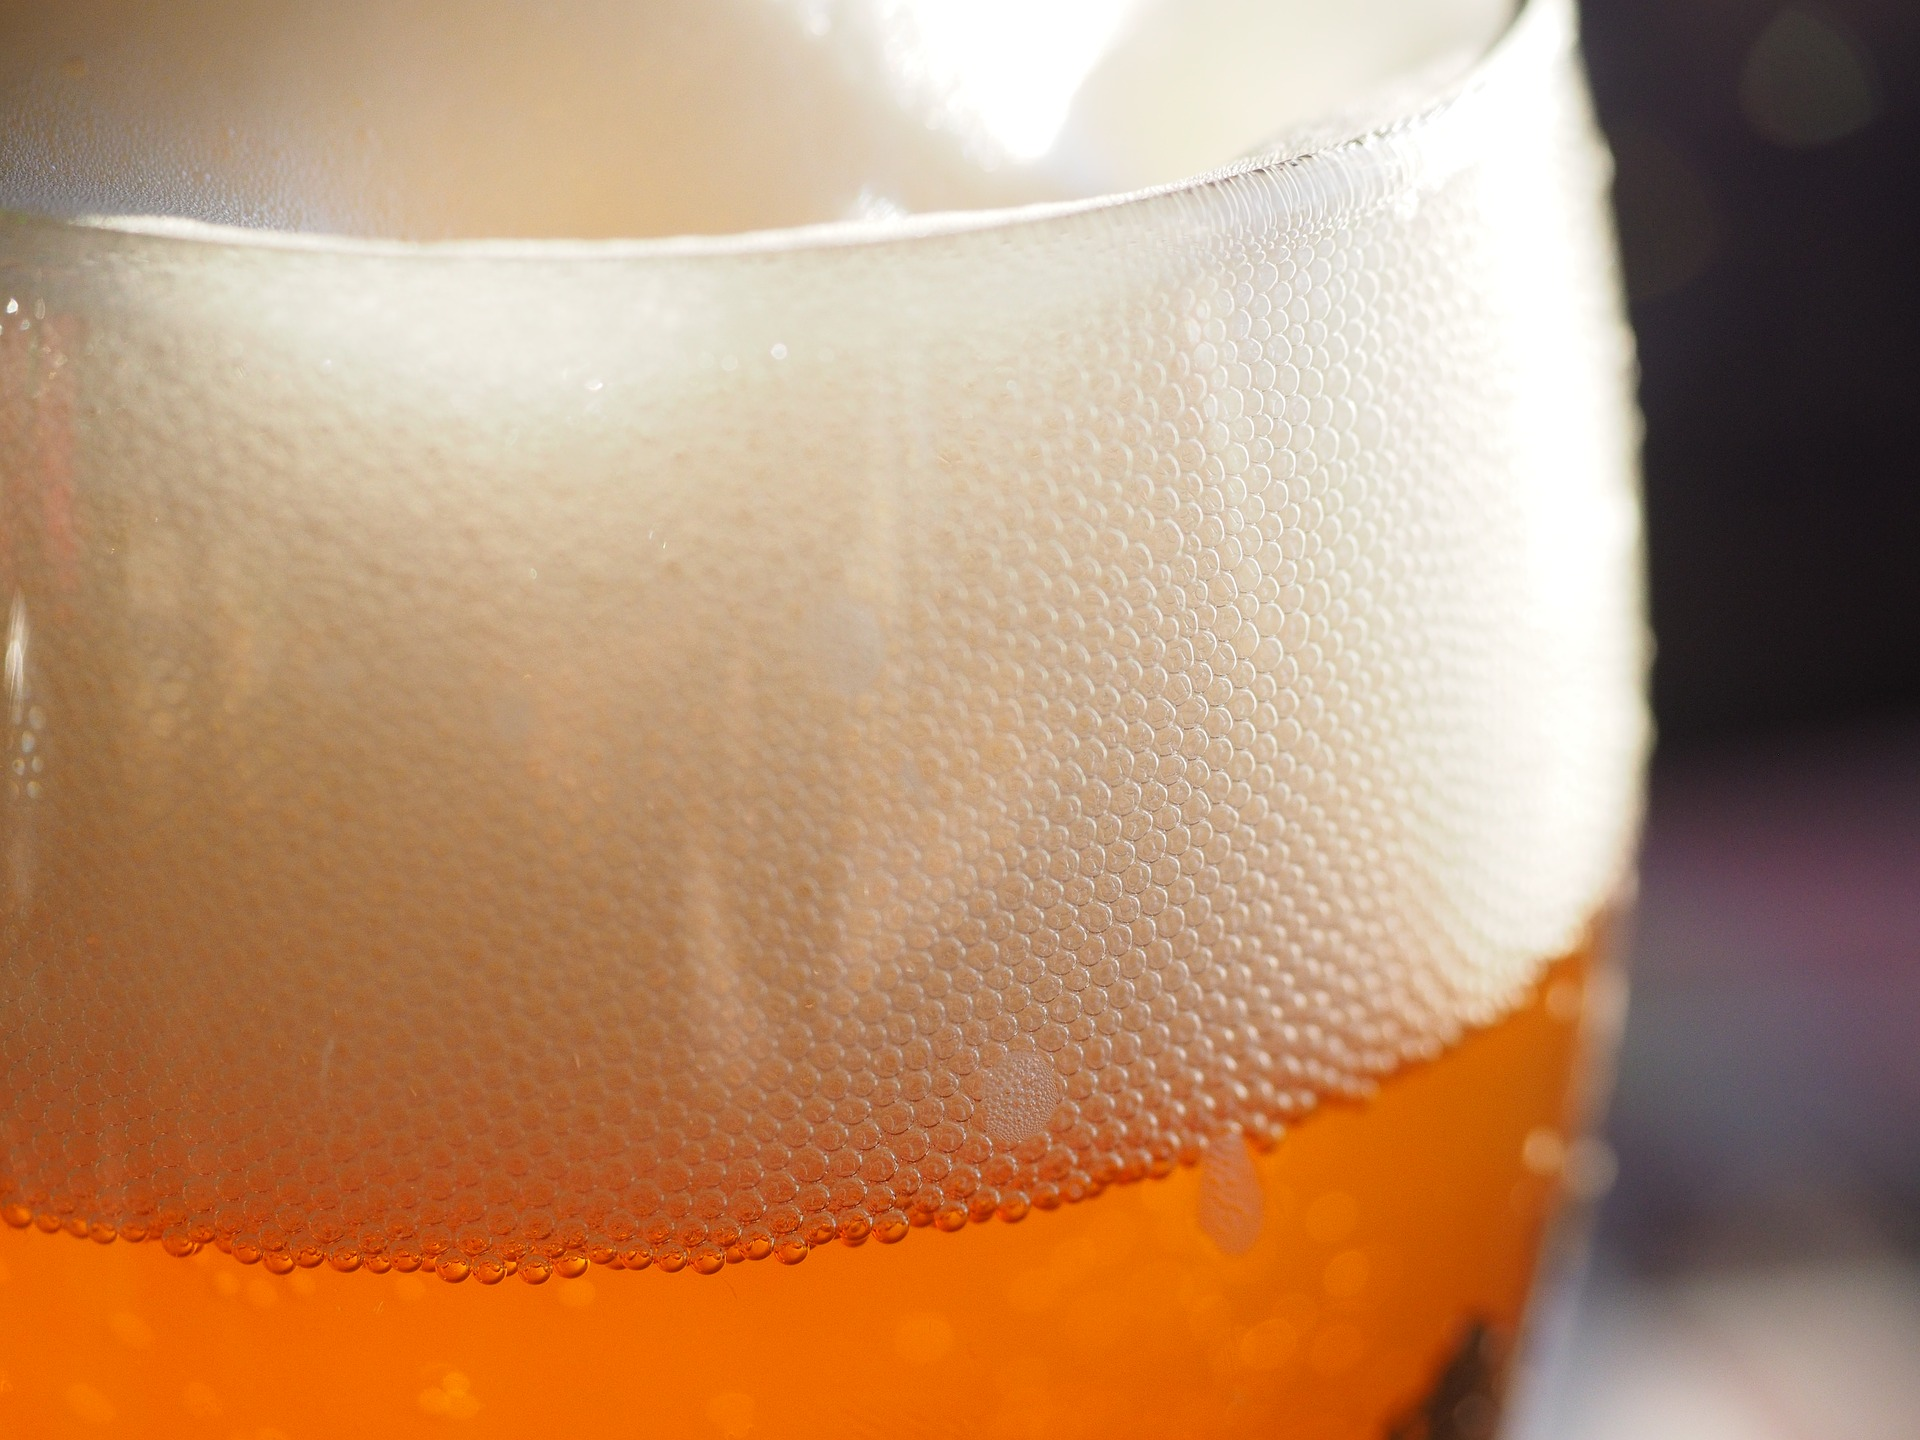 Can Beer Yeast Be Used To Create THC And CBD?